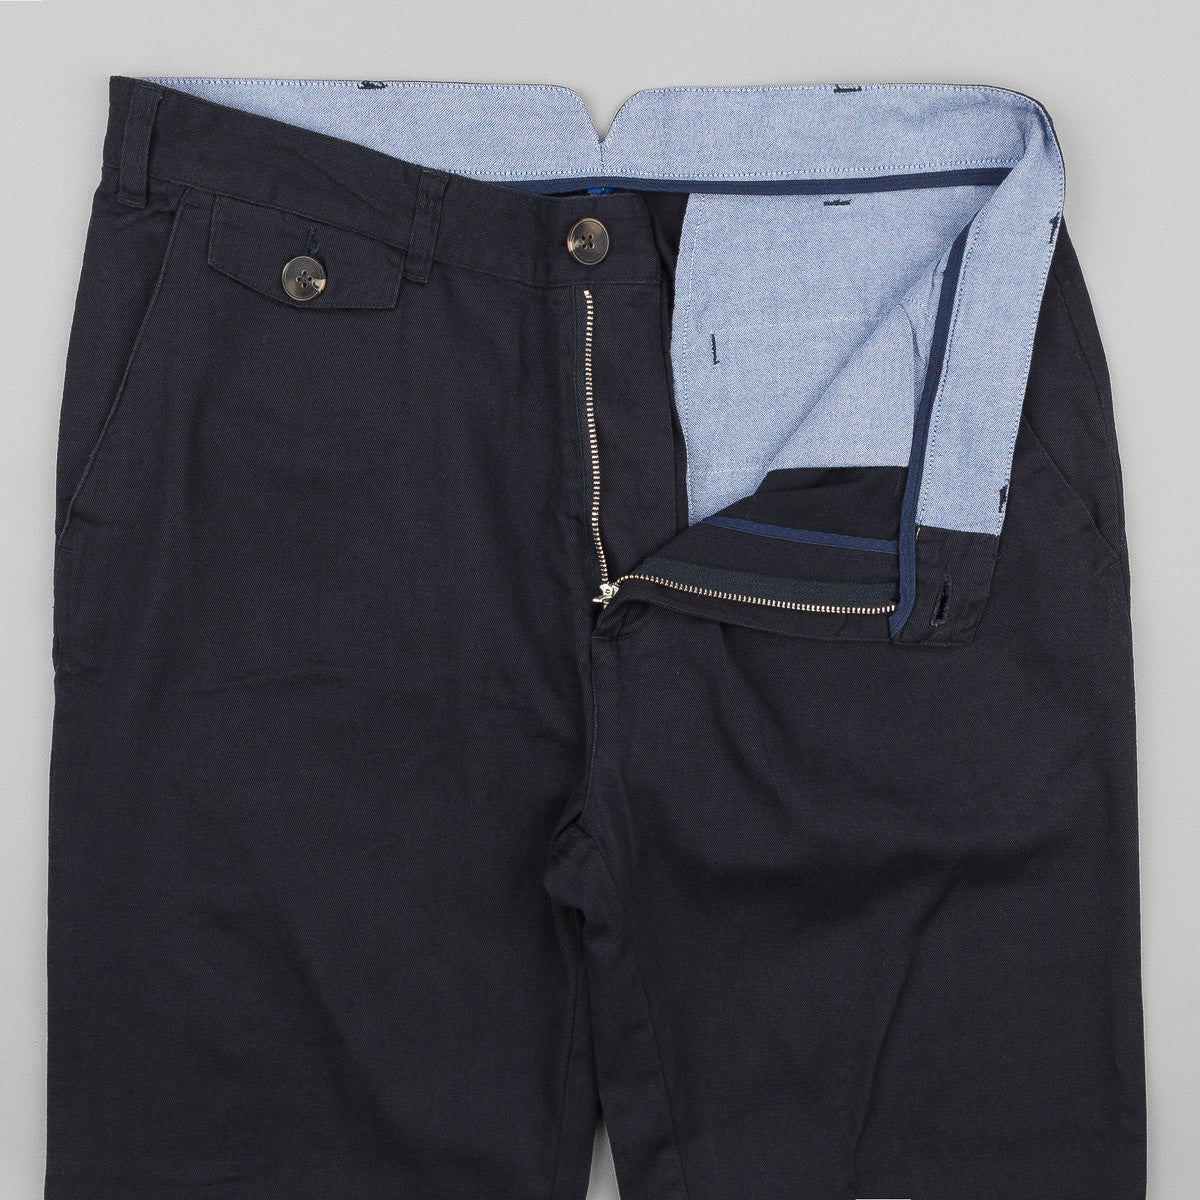 Penfield Millwood Trousers - Navy